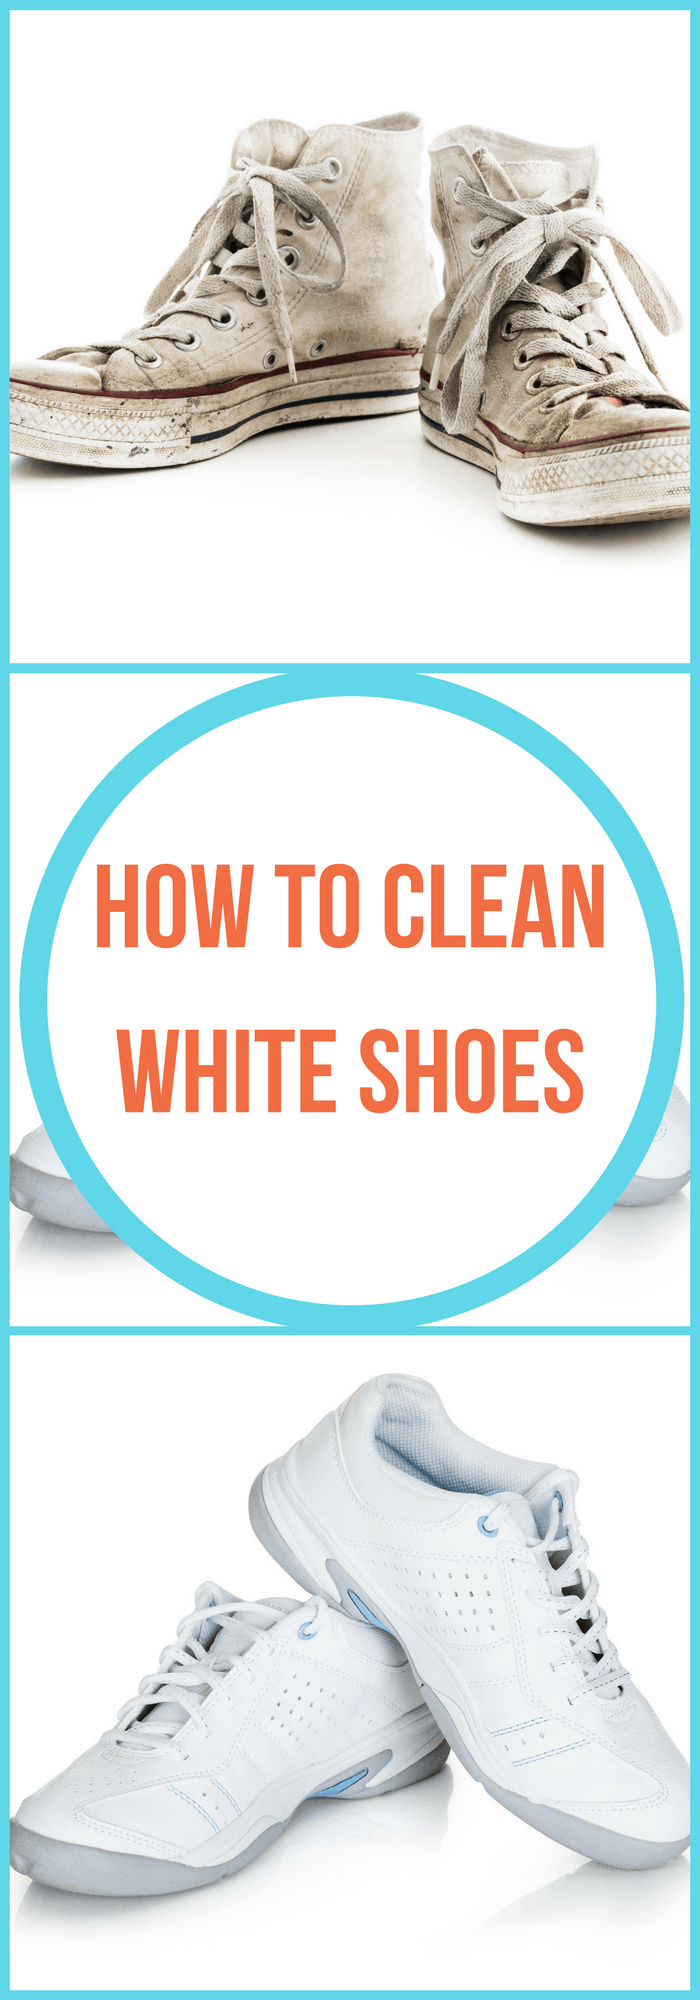 Laundry--How to Clean White Shoes